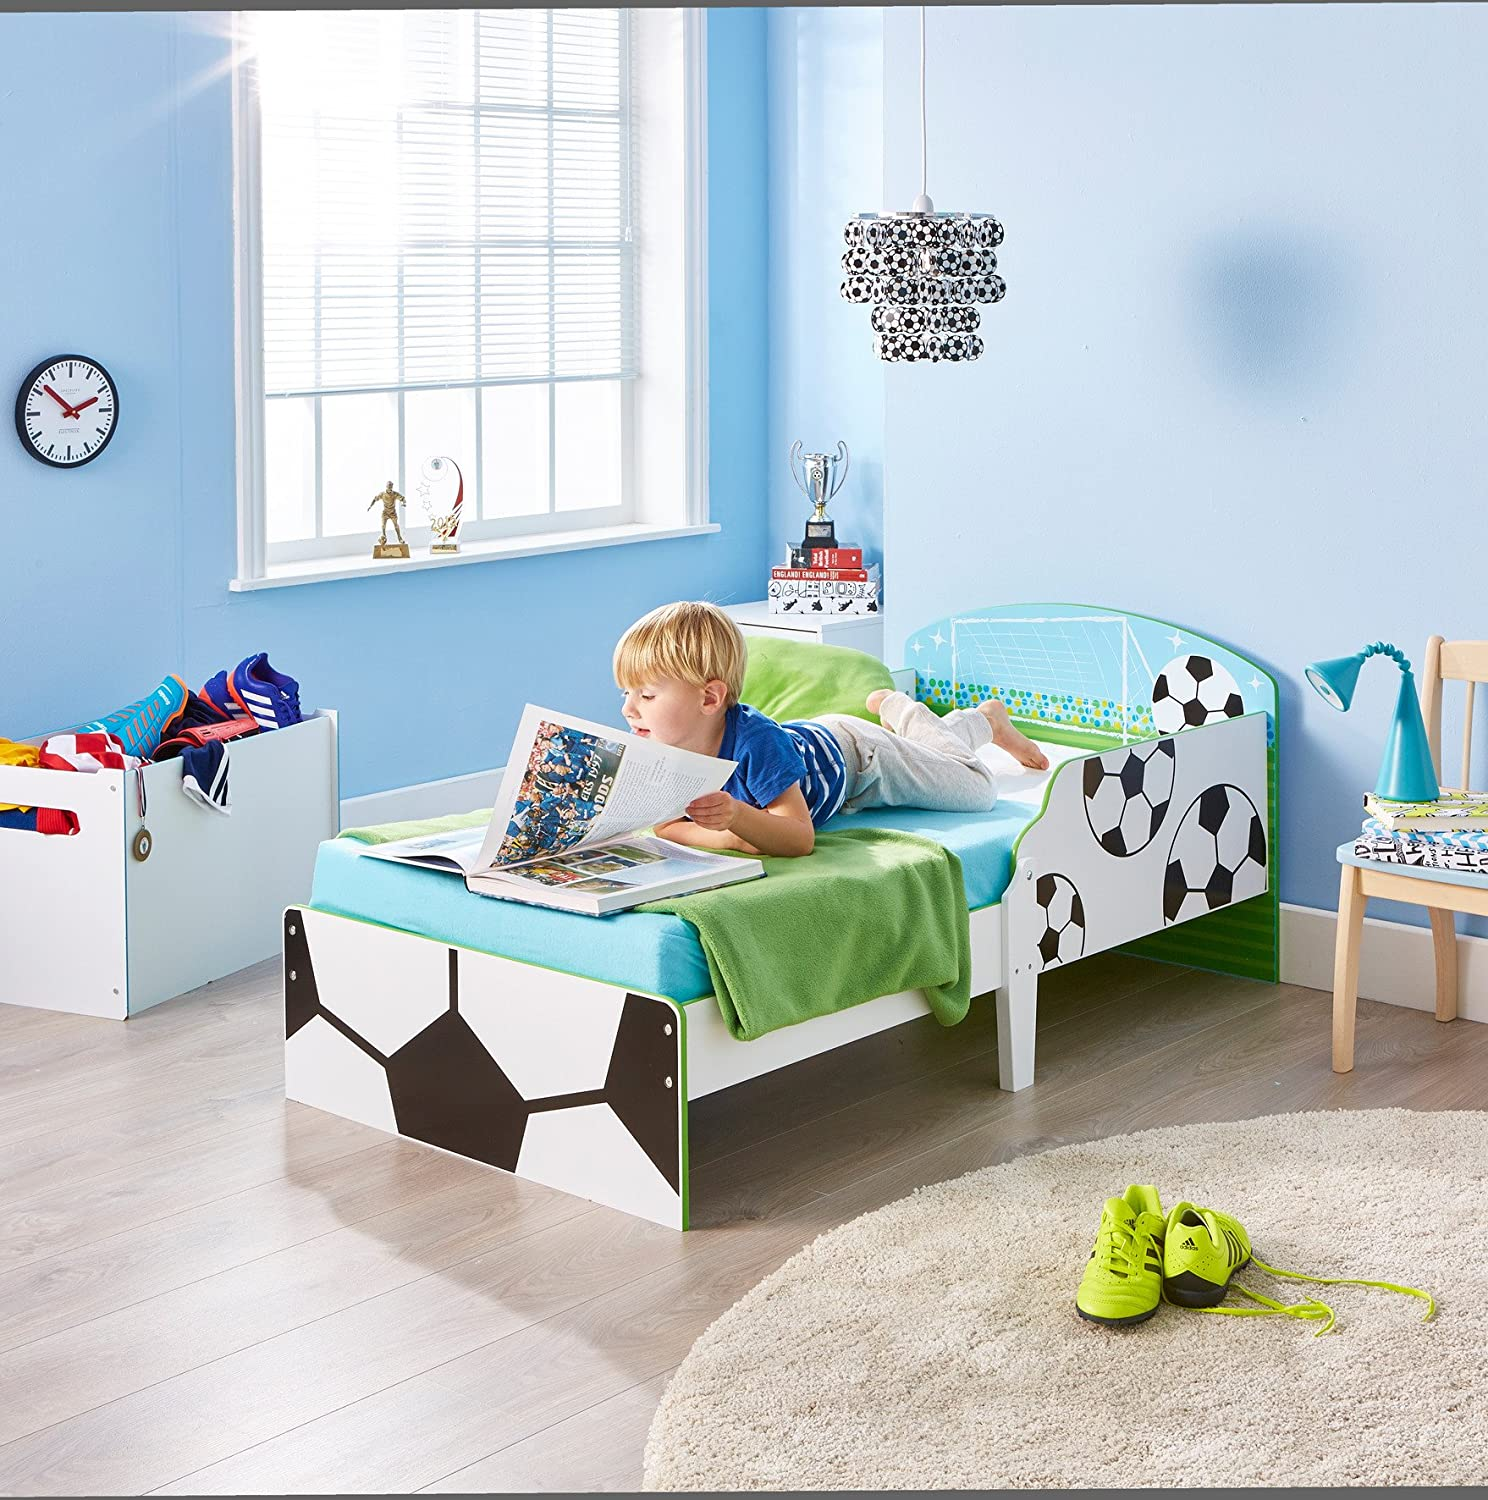 traveling jolly trundle girls canopy loft fulgurant boy junior along walmart at boys full toddler autism little special storage with beds toysrus fing sydney cool then canada melbourne ah bed rollaway toddlers